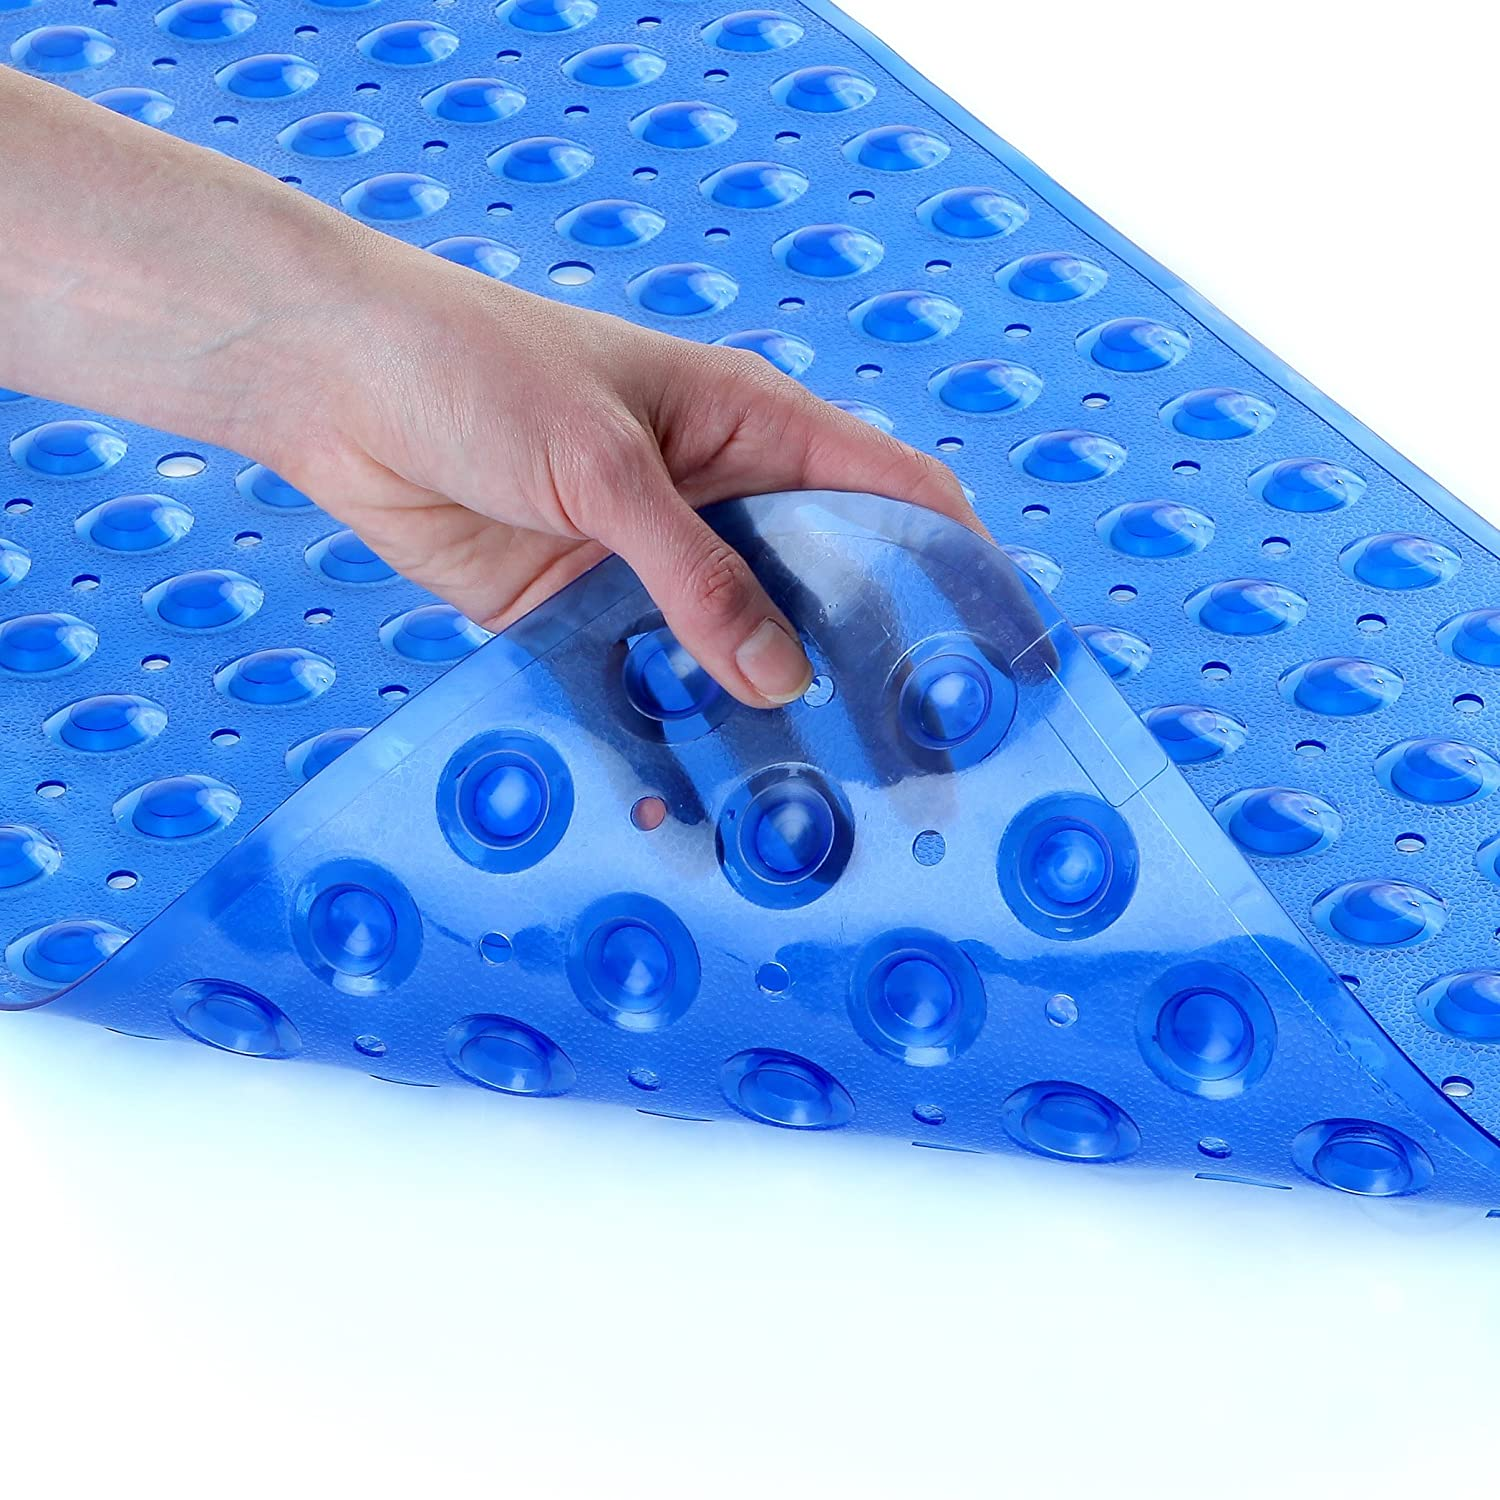 200 Suction Cups, 100cm Long - Extended Coverage, Machine Washable SlipX Solutions Blue Extra Long Bath Mat Adds Non-Slip Traction to Tubs /& Showers 30/% Longer than Standard Mats!